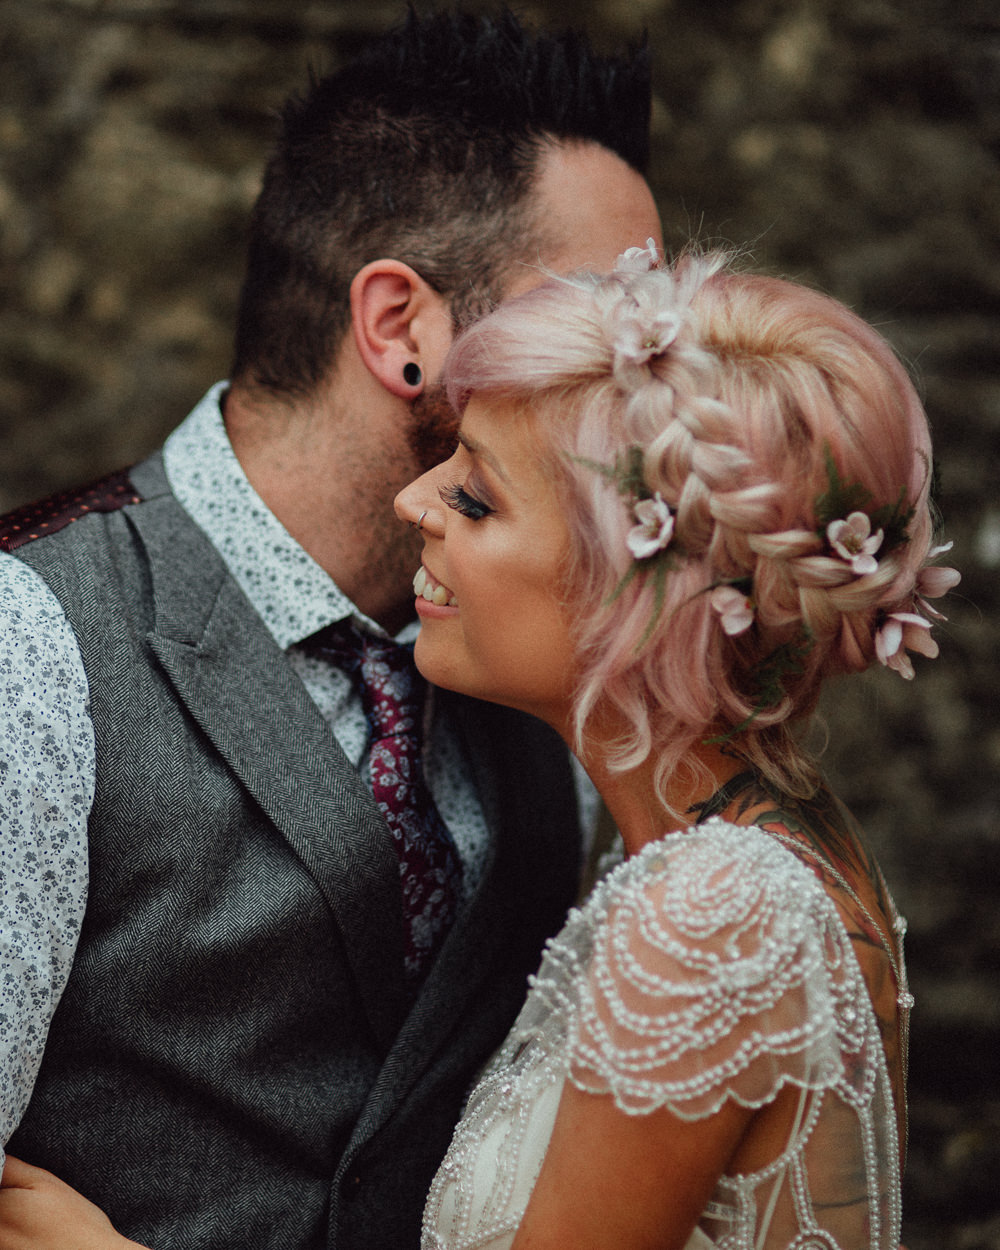 Make Up Hair Bride Bridal Pink Plait Braid Flowers Oxleaze Barn Wedding Emily and Steve Photography